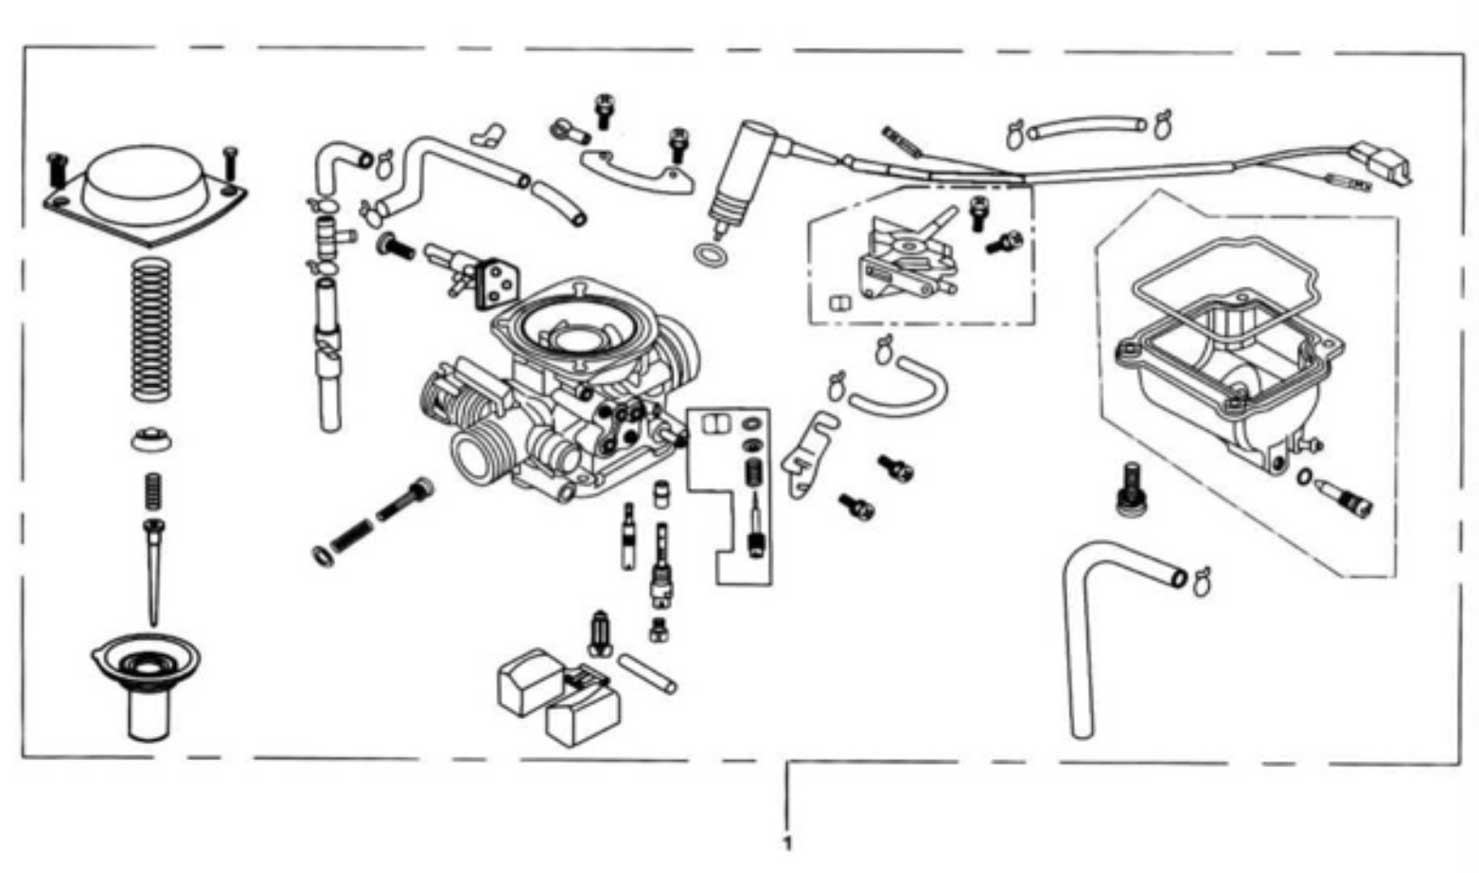 Cf Moto 250 Wiring Diagram Trusted 600 Diagrams 2008 Parts Auto